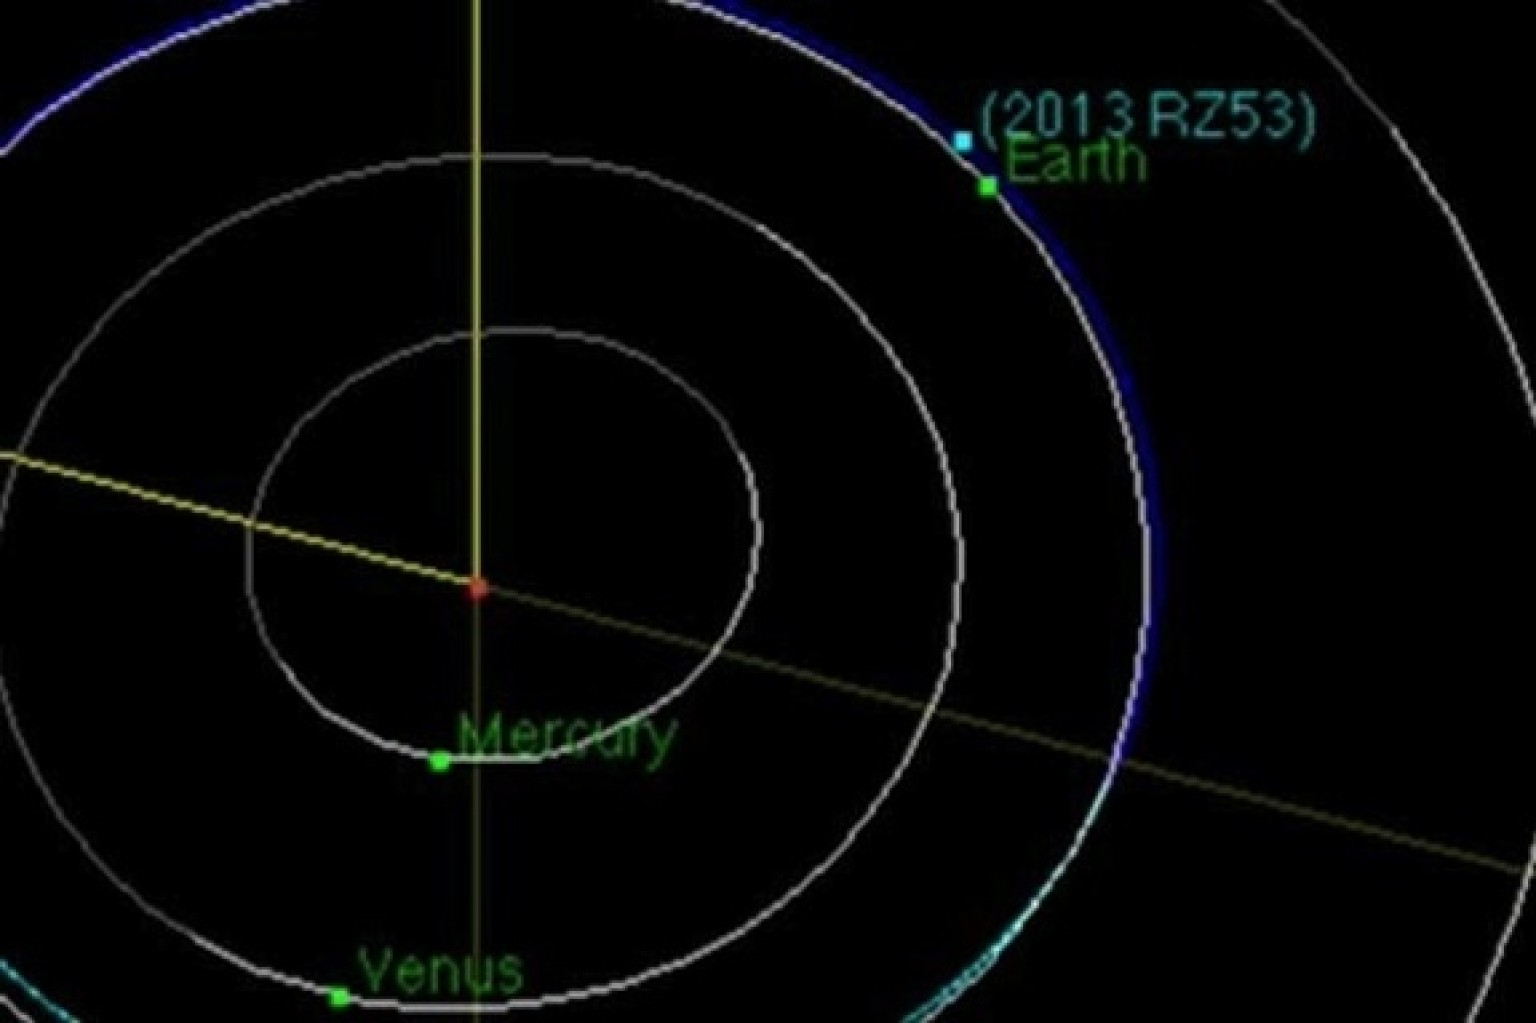 Asteroid 2013 RZ53 To Pass Between Earth & Moon This Week ...